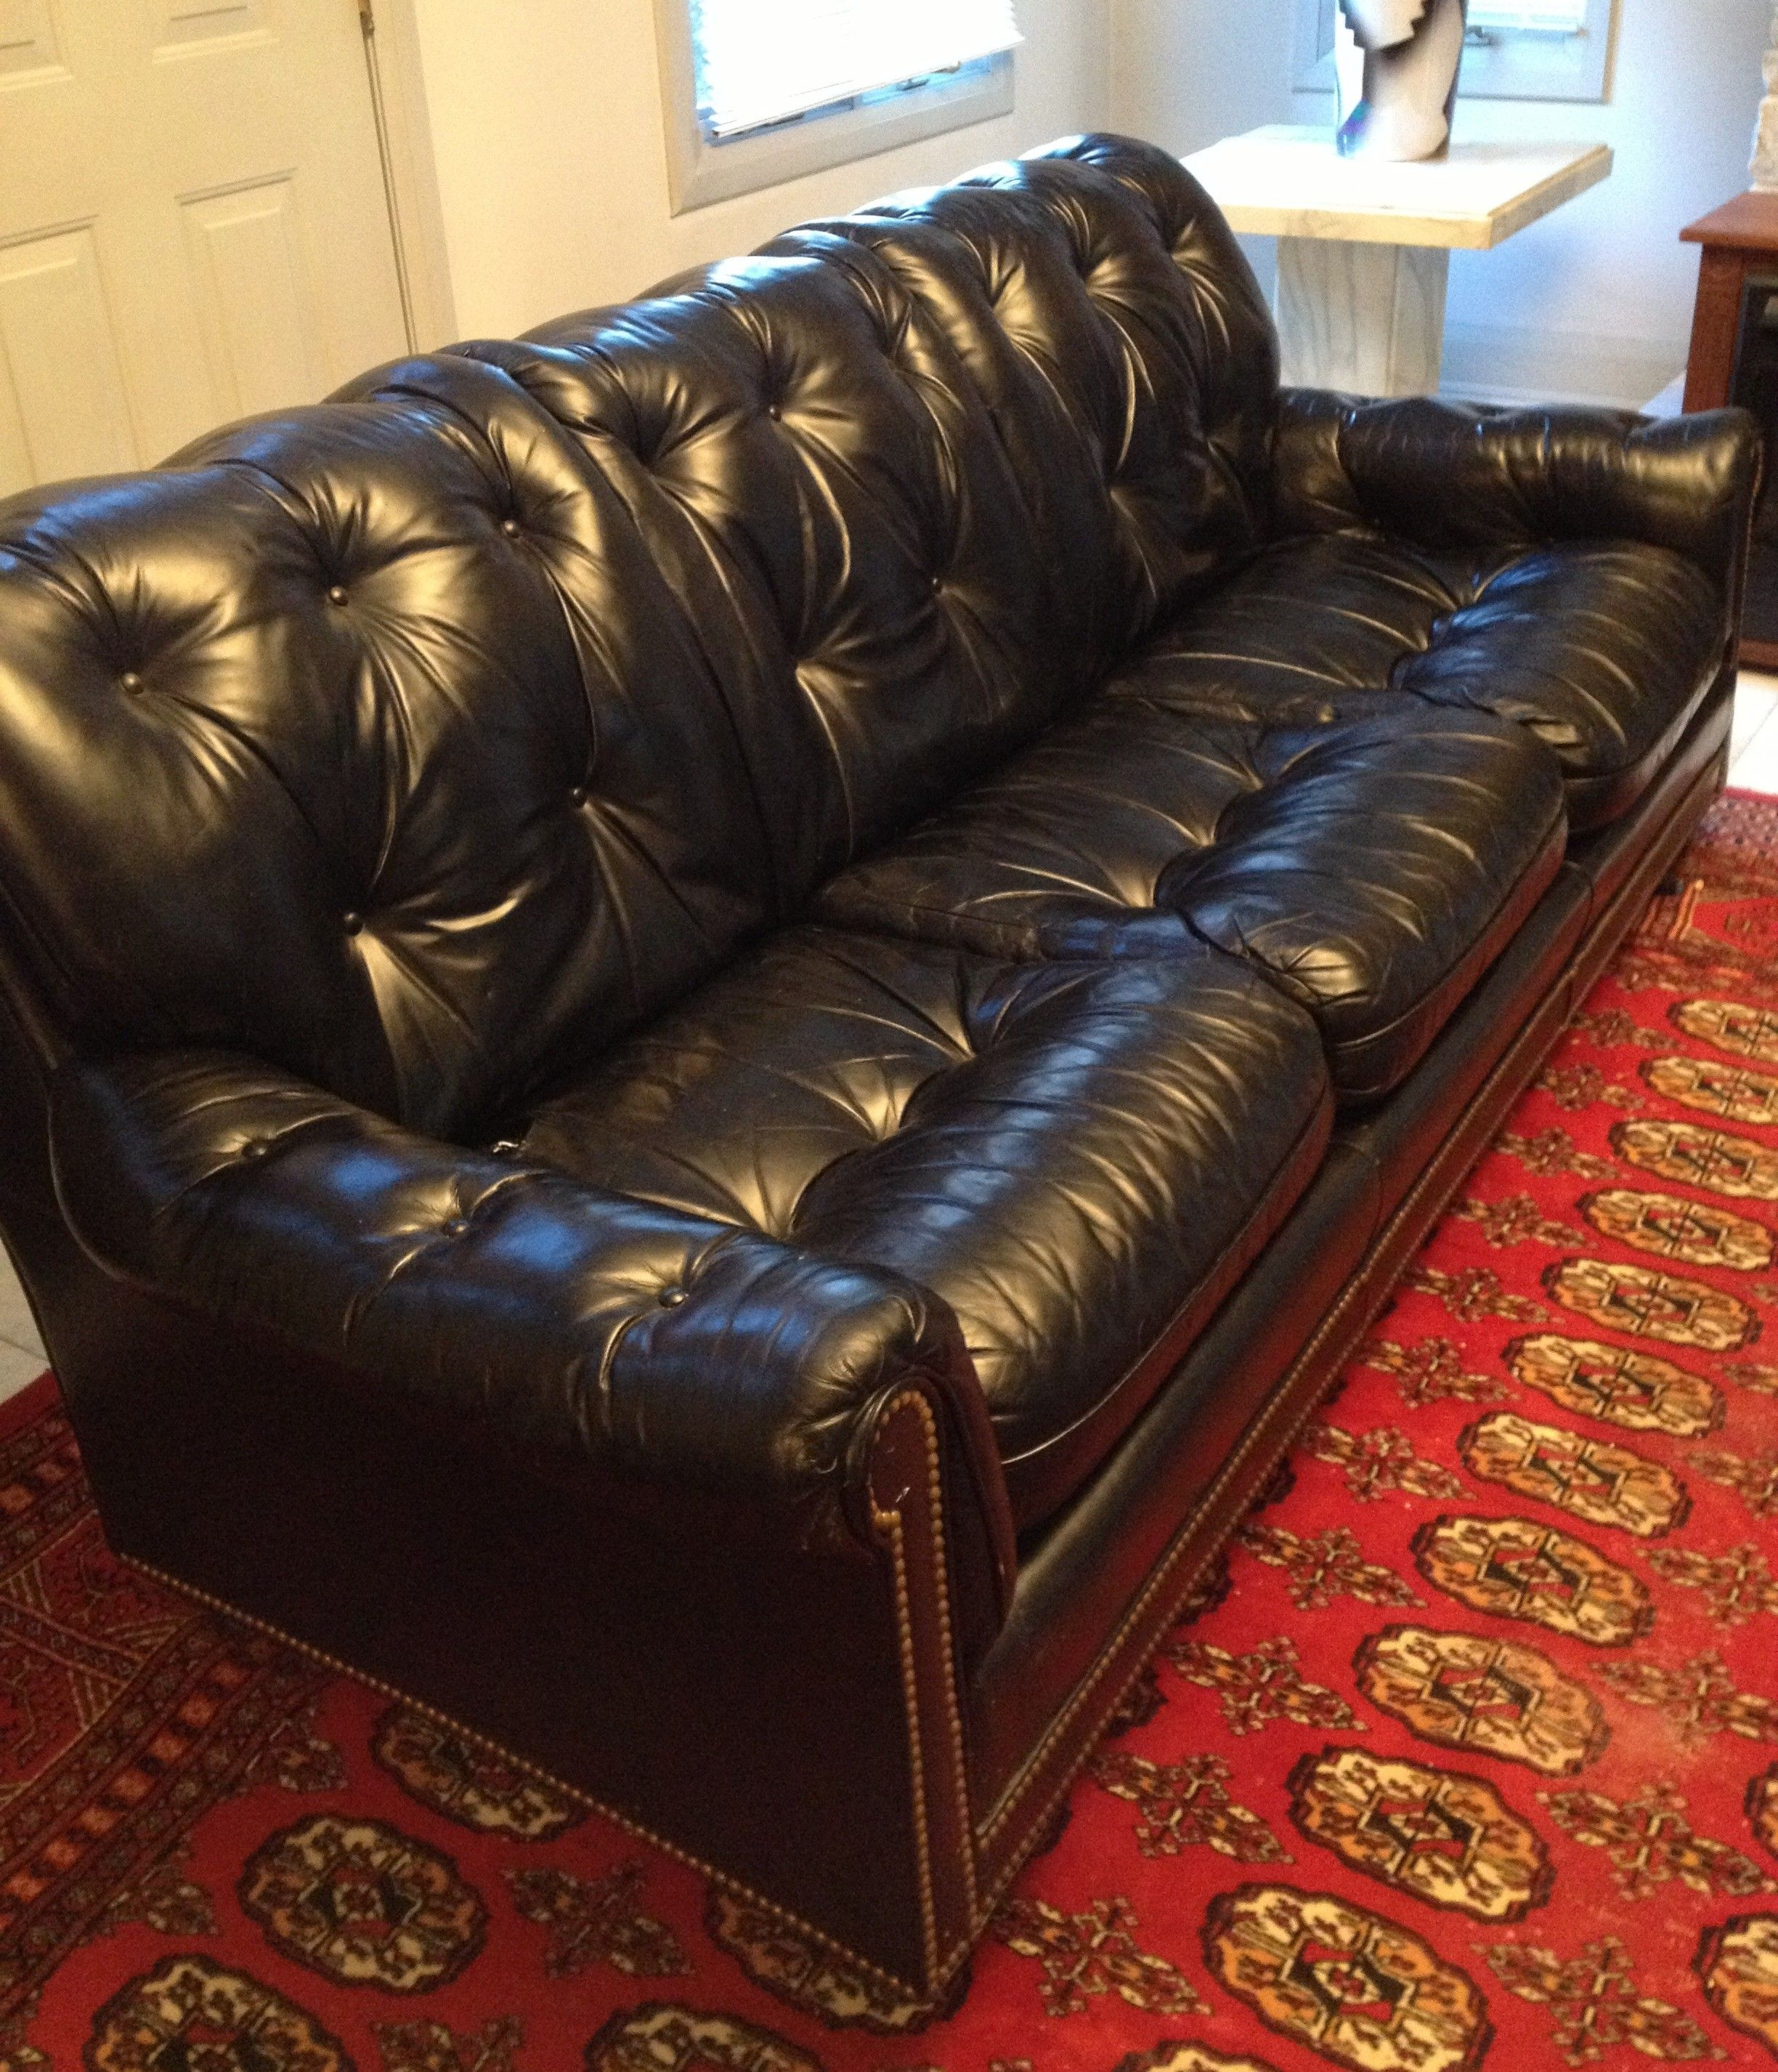 Pin by Furnishly.com on Chicago Listings   Black leather ...